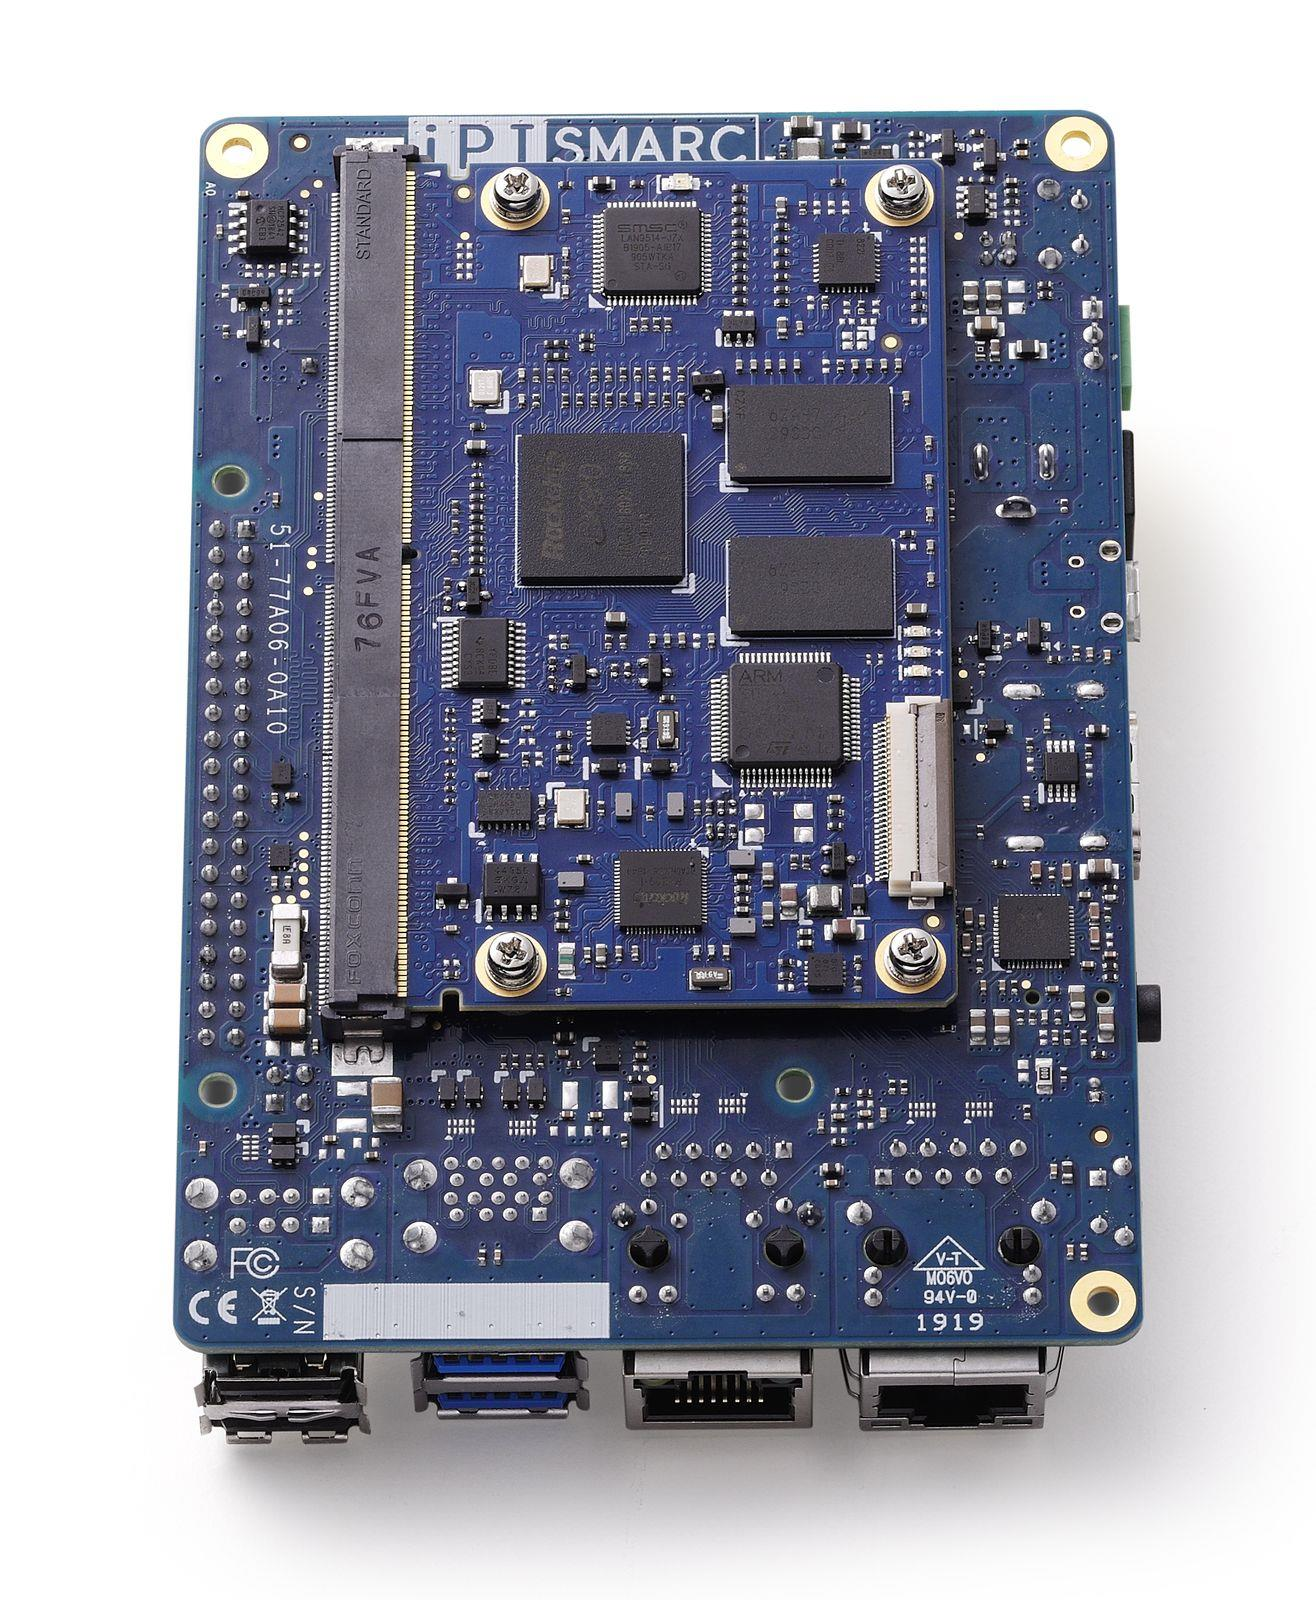 the underside of ADLINK&rsquo;s I-Pi carrier and SMARC processing module<br />Figure 3: Shown is the underside of ADLINK's I-Pi carrier and SMARC processing module. (Image source: ADLINK)